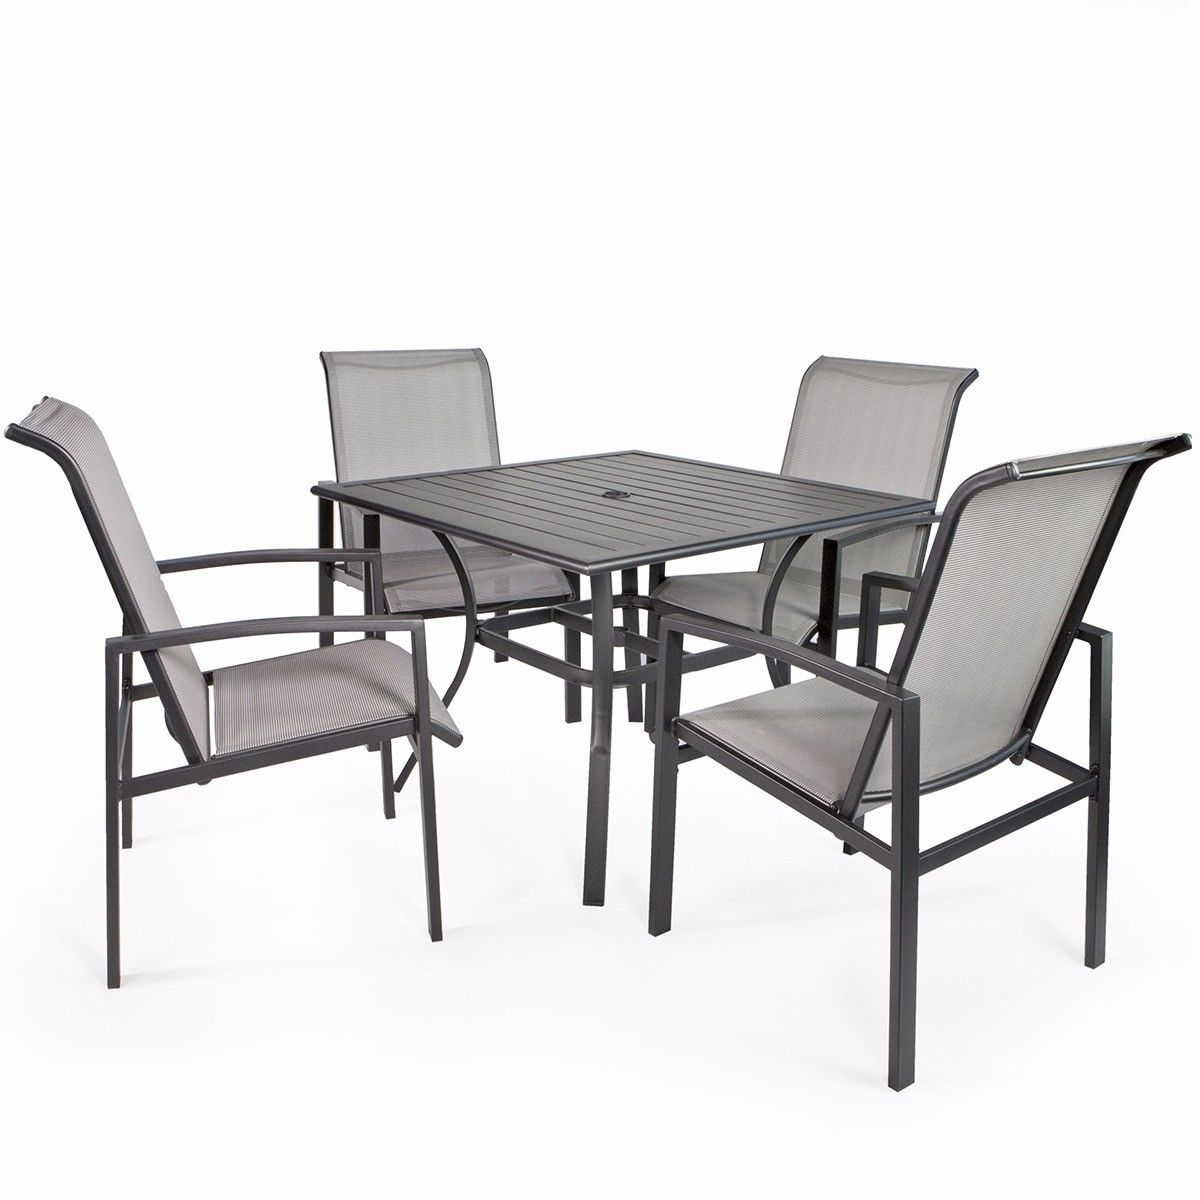 Barton 5-Piece Outdoor Patio Dining 1 Table and 4 Chairs Set Outdoor Furniture | eBay